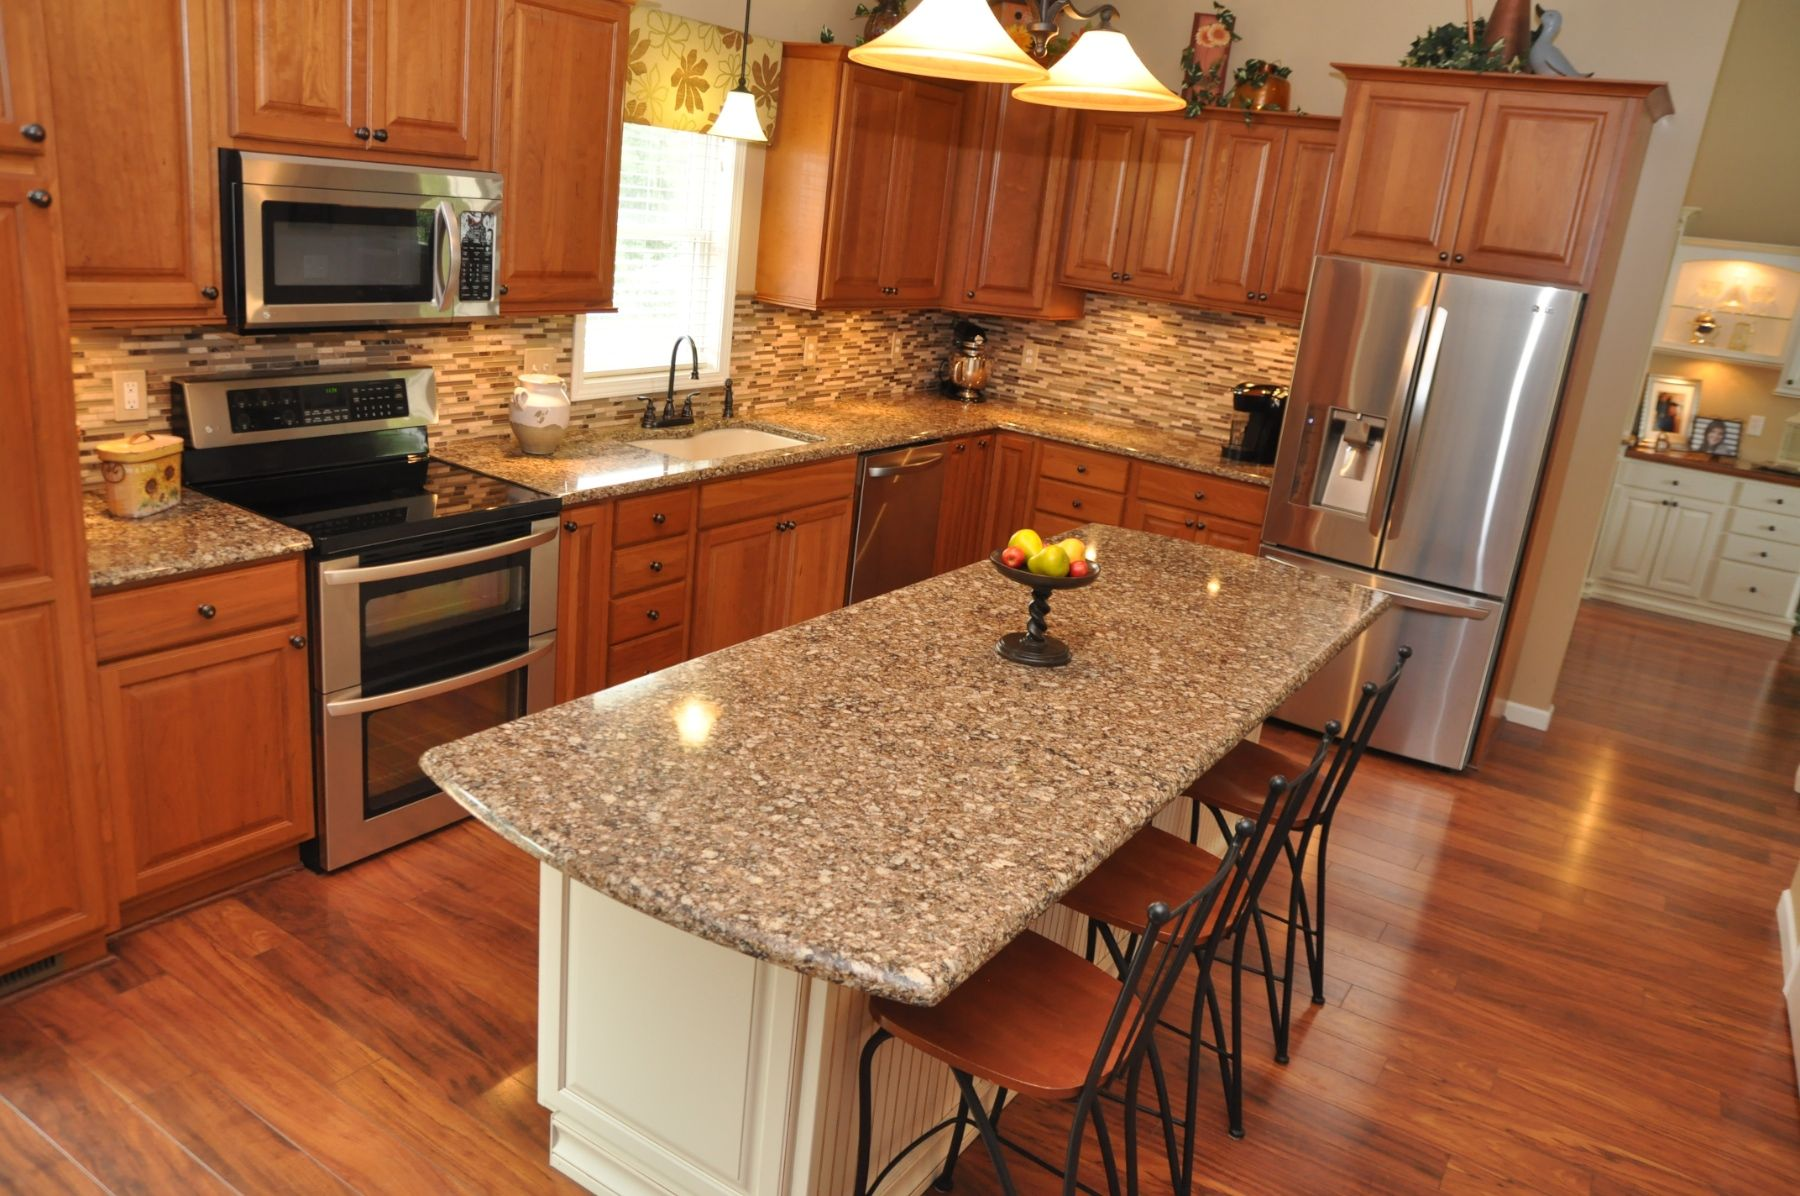 Kitchen remodel using showplace cherry wood cabinetry for Kitchen cabinets berkeley